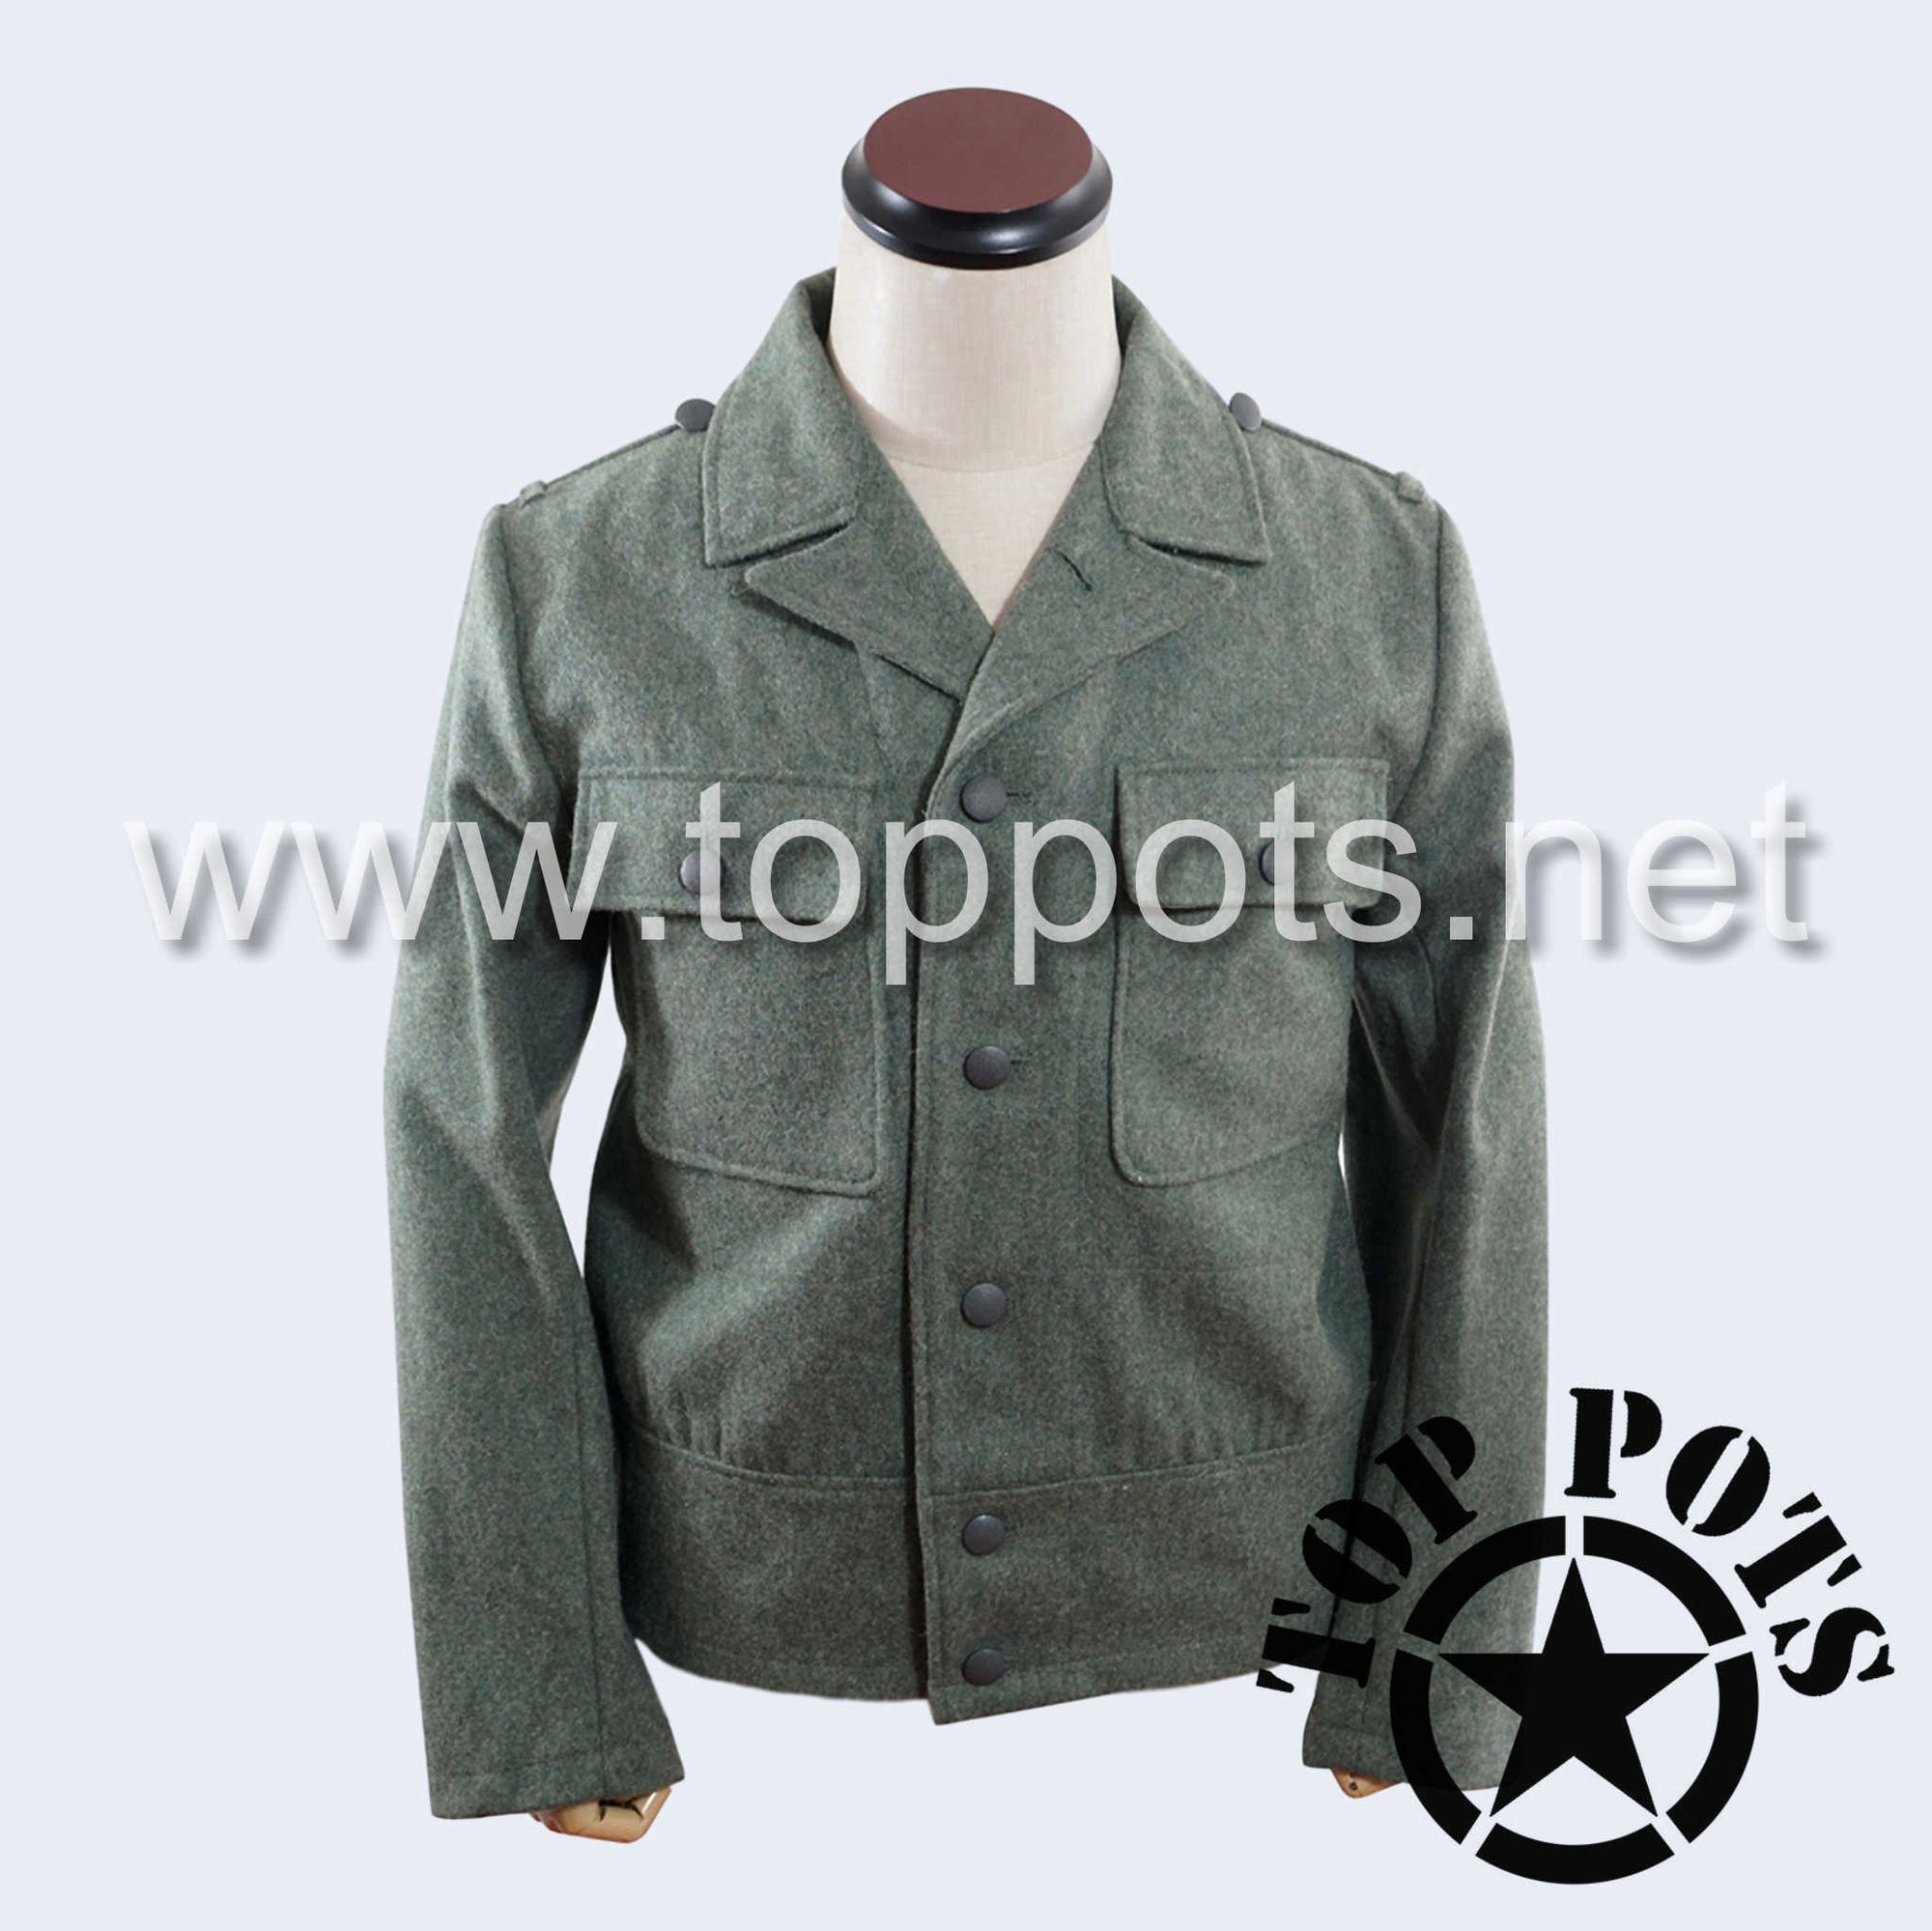 WWII German Army M1944 Waffen SS Enlisted Field Grey Wool Uniform Jacket - 6 Button Tunic